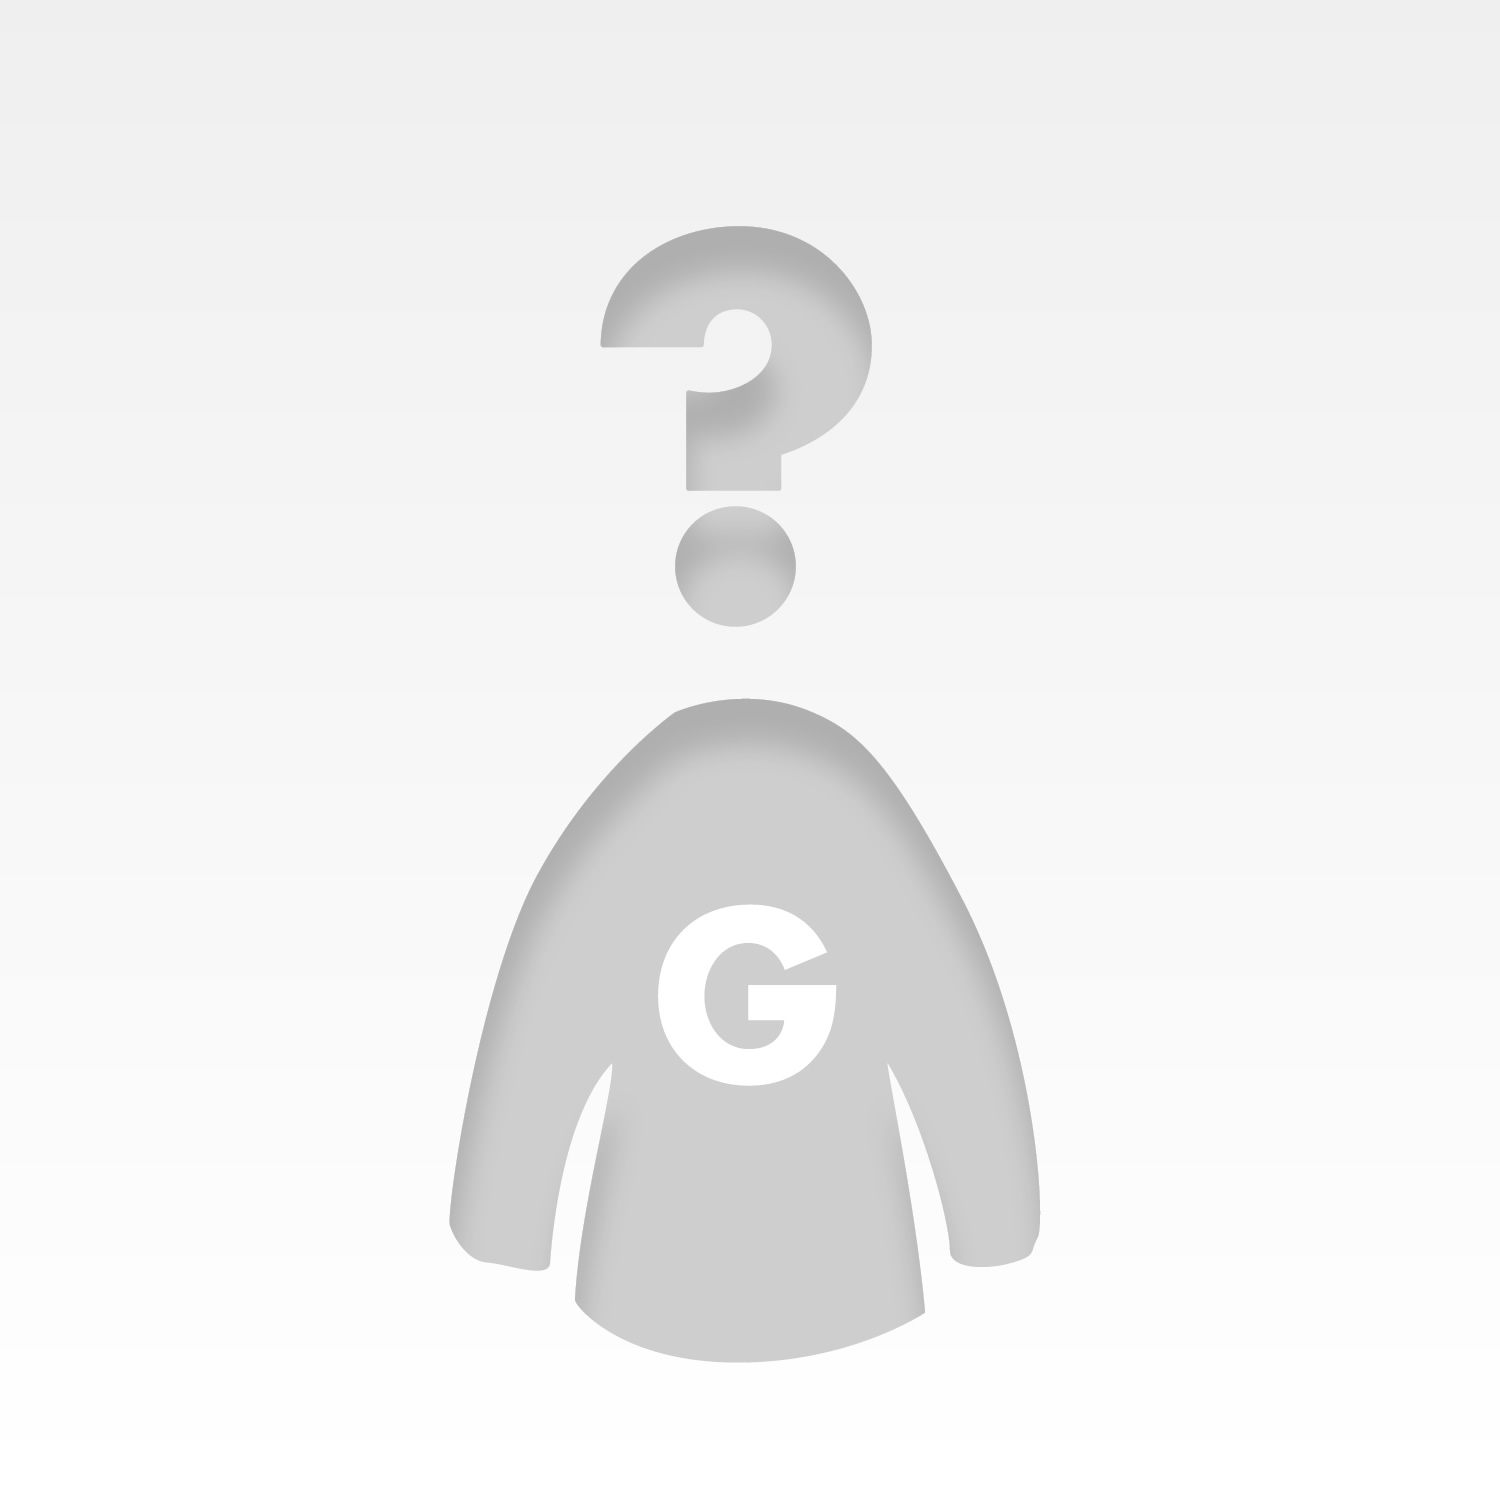 The s7cgqx5rd's avatar